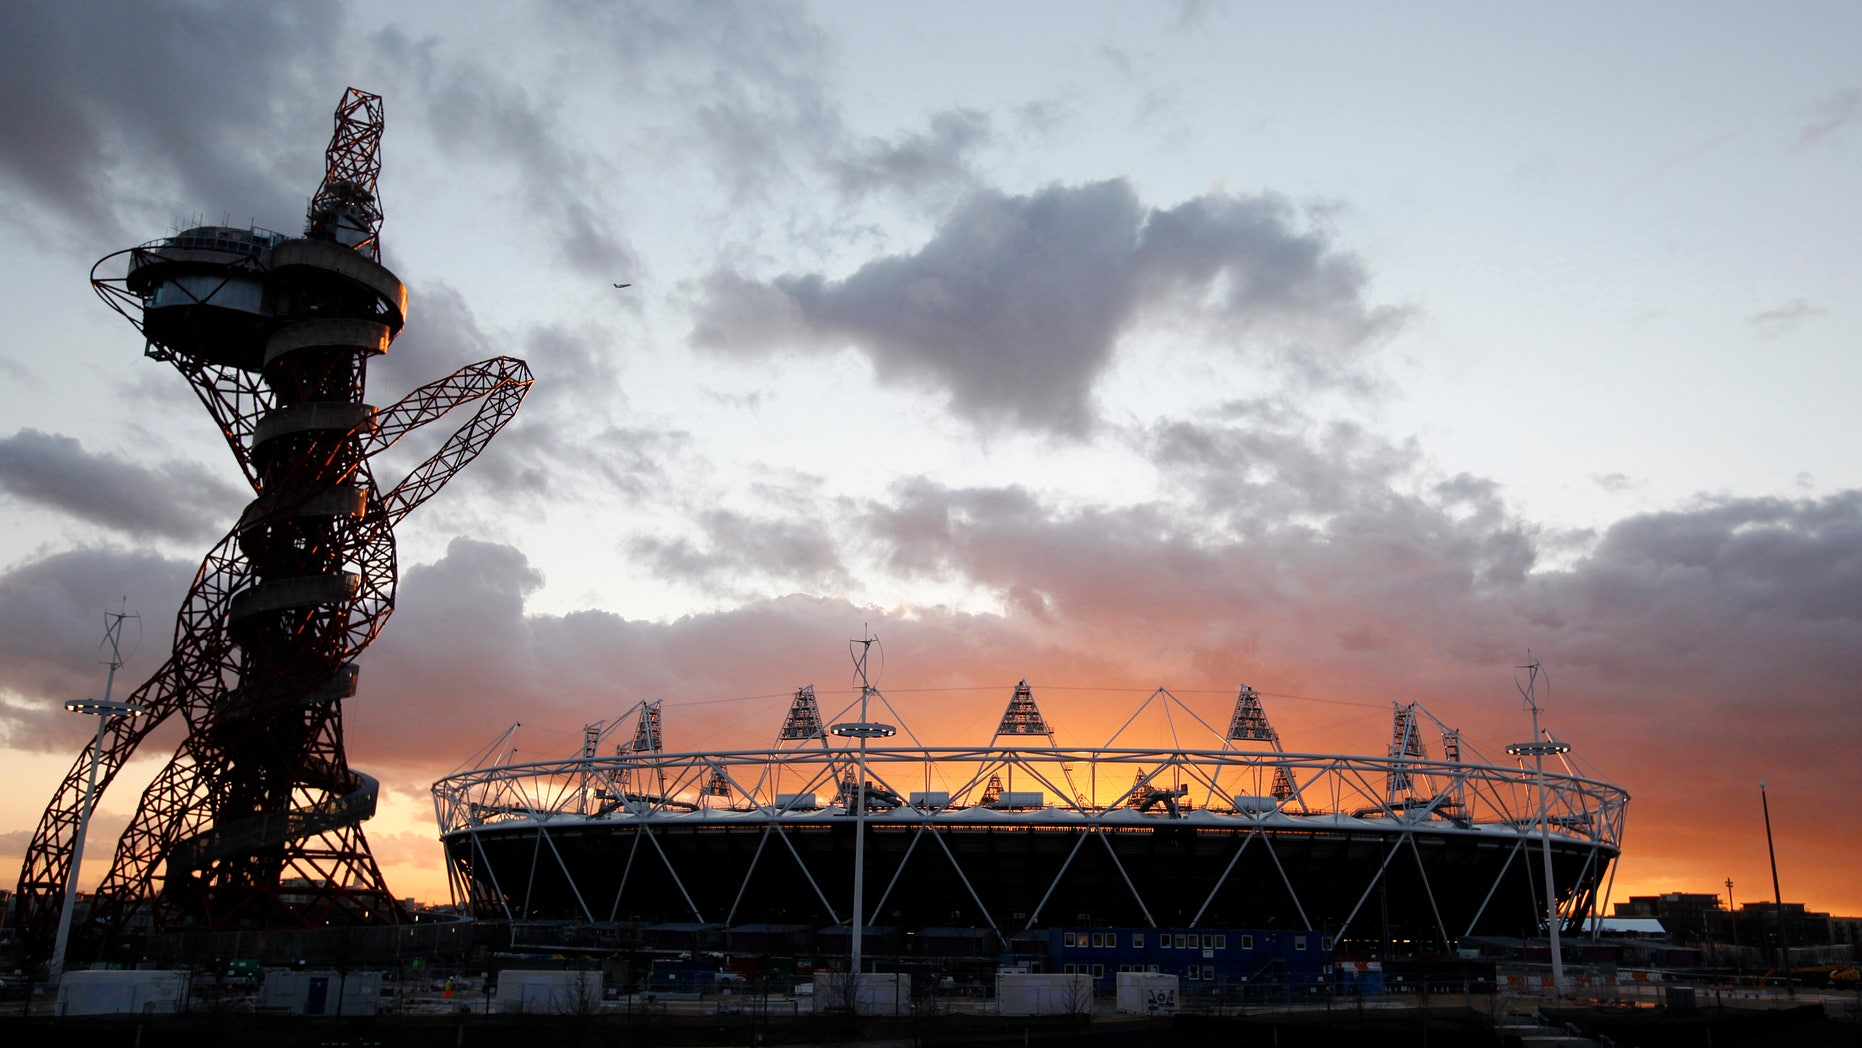 March 7, 2012: This file photo shows the London 2012 Olympic Stadium  at sunset at the Olympic Park in London.